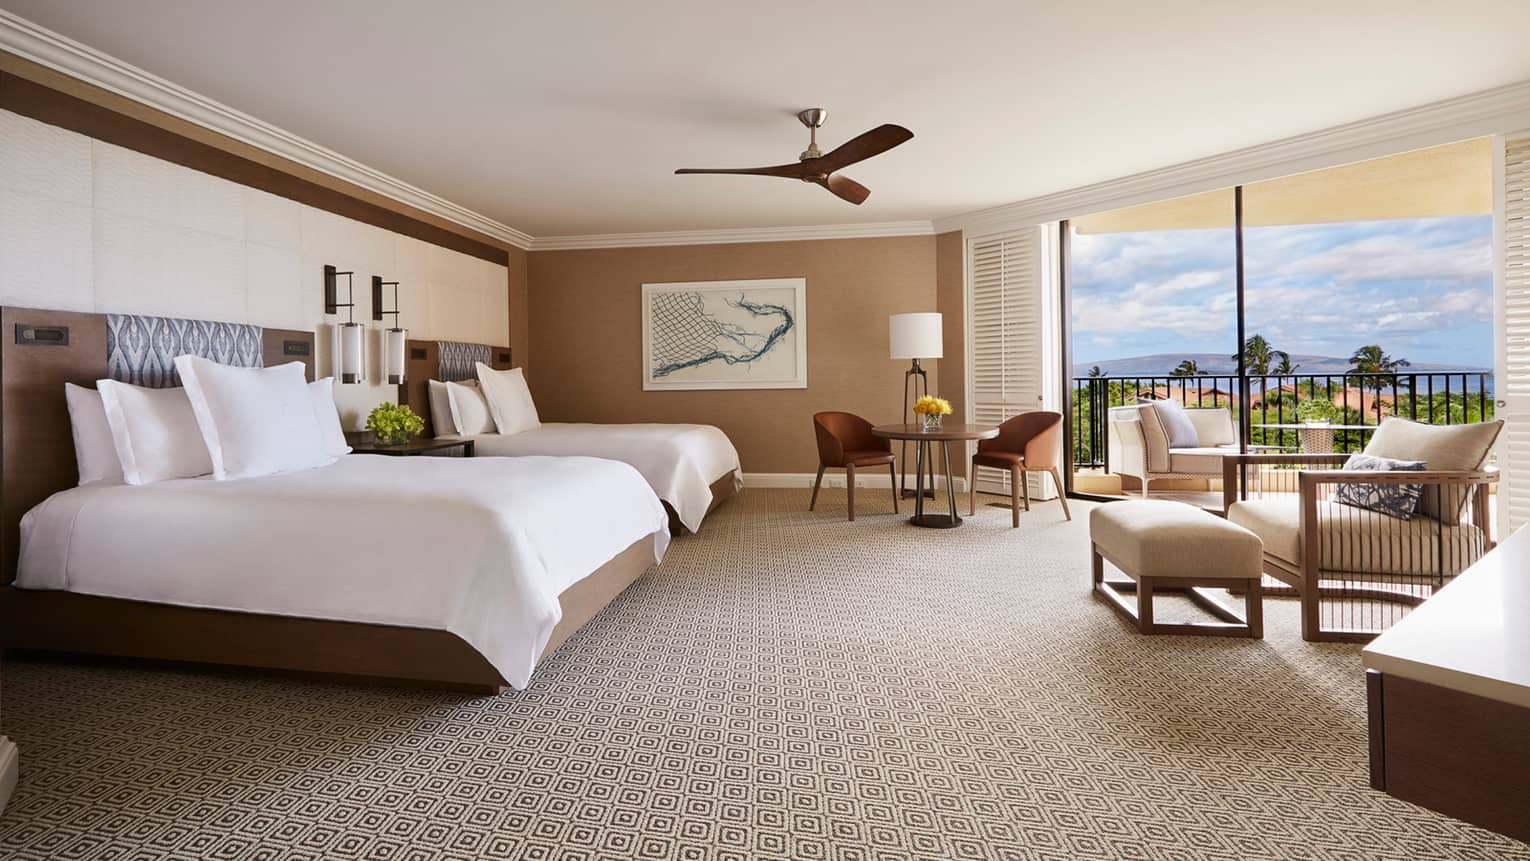 Bright Club Ocean-View Room bed with two-seat dining table, armchair and lanais with ocean view